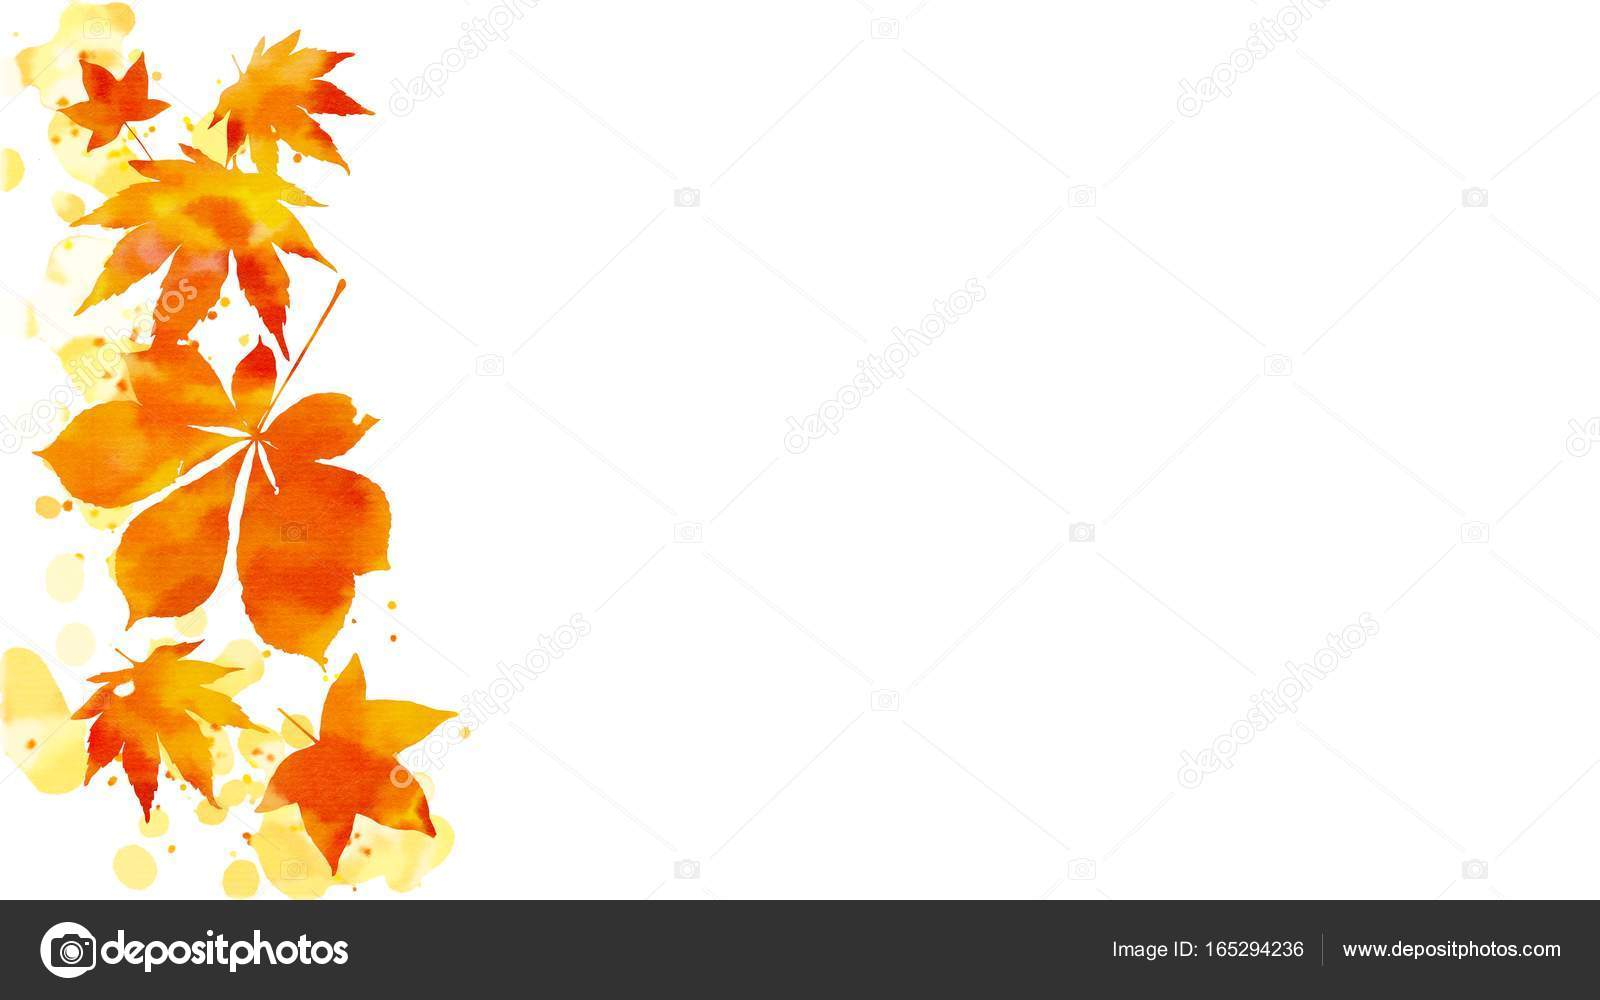 Border Of Vibrant Orange And Red Autumn Foliage On Abstract Watercolor Stains With Copy Space White Background Digital Art Painting May Be Used For